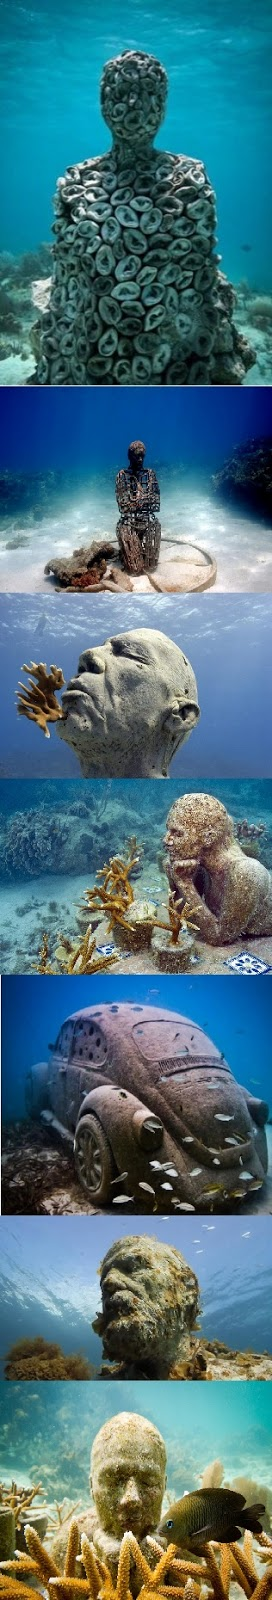 Cancun underwater museum mexico for Spain underwater museum